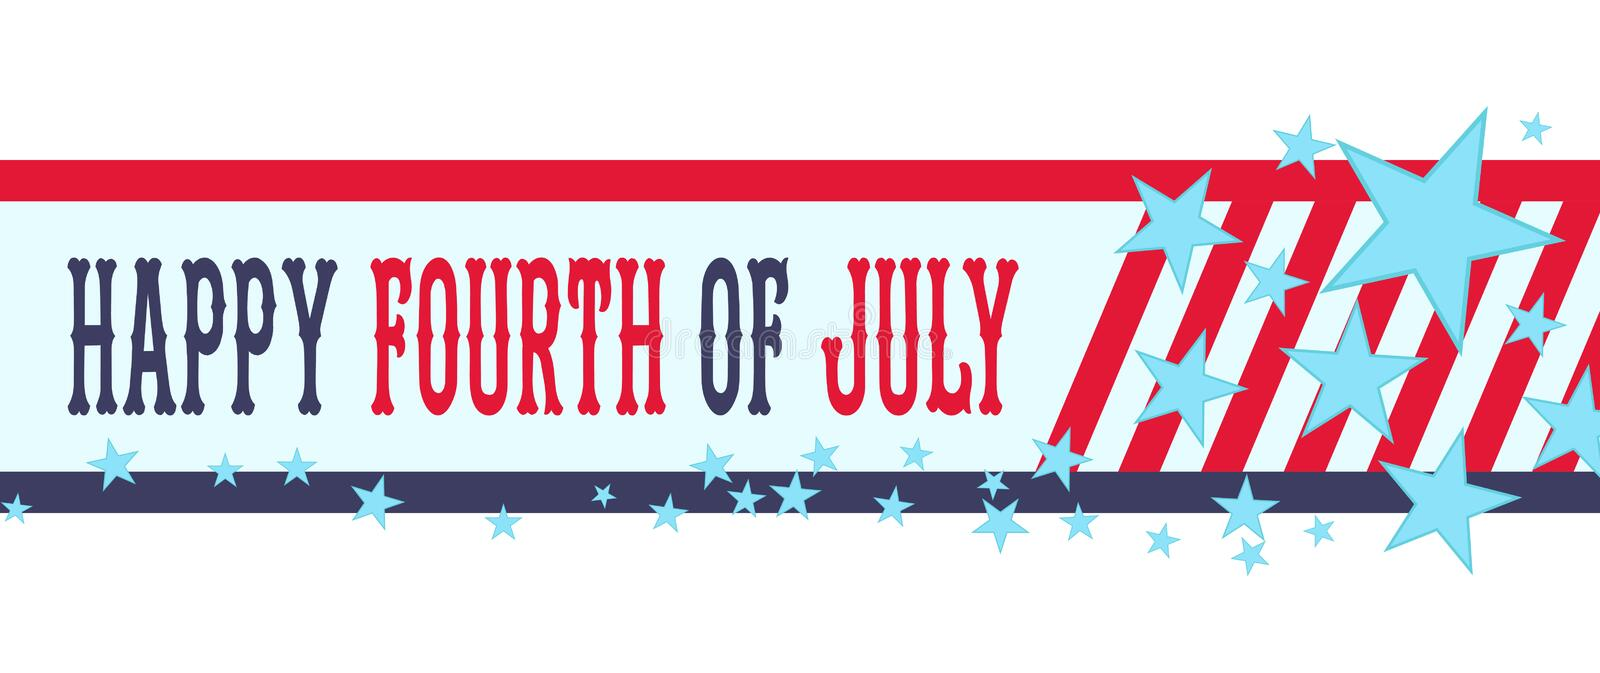 Happy fourth of July banner with stars and stripes. USA Independence Day or 4th of July decoration. royalty free illustration